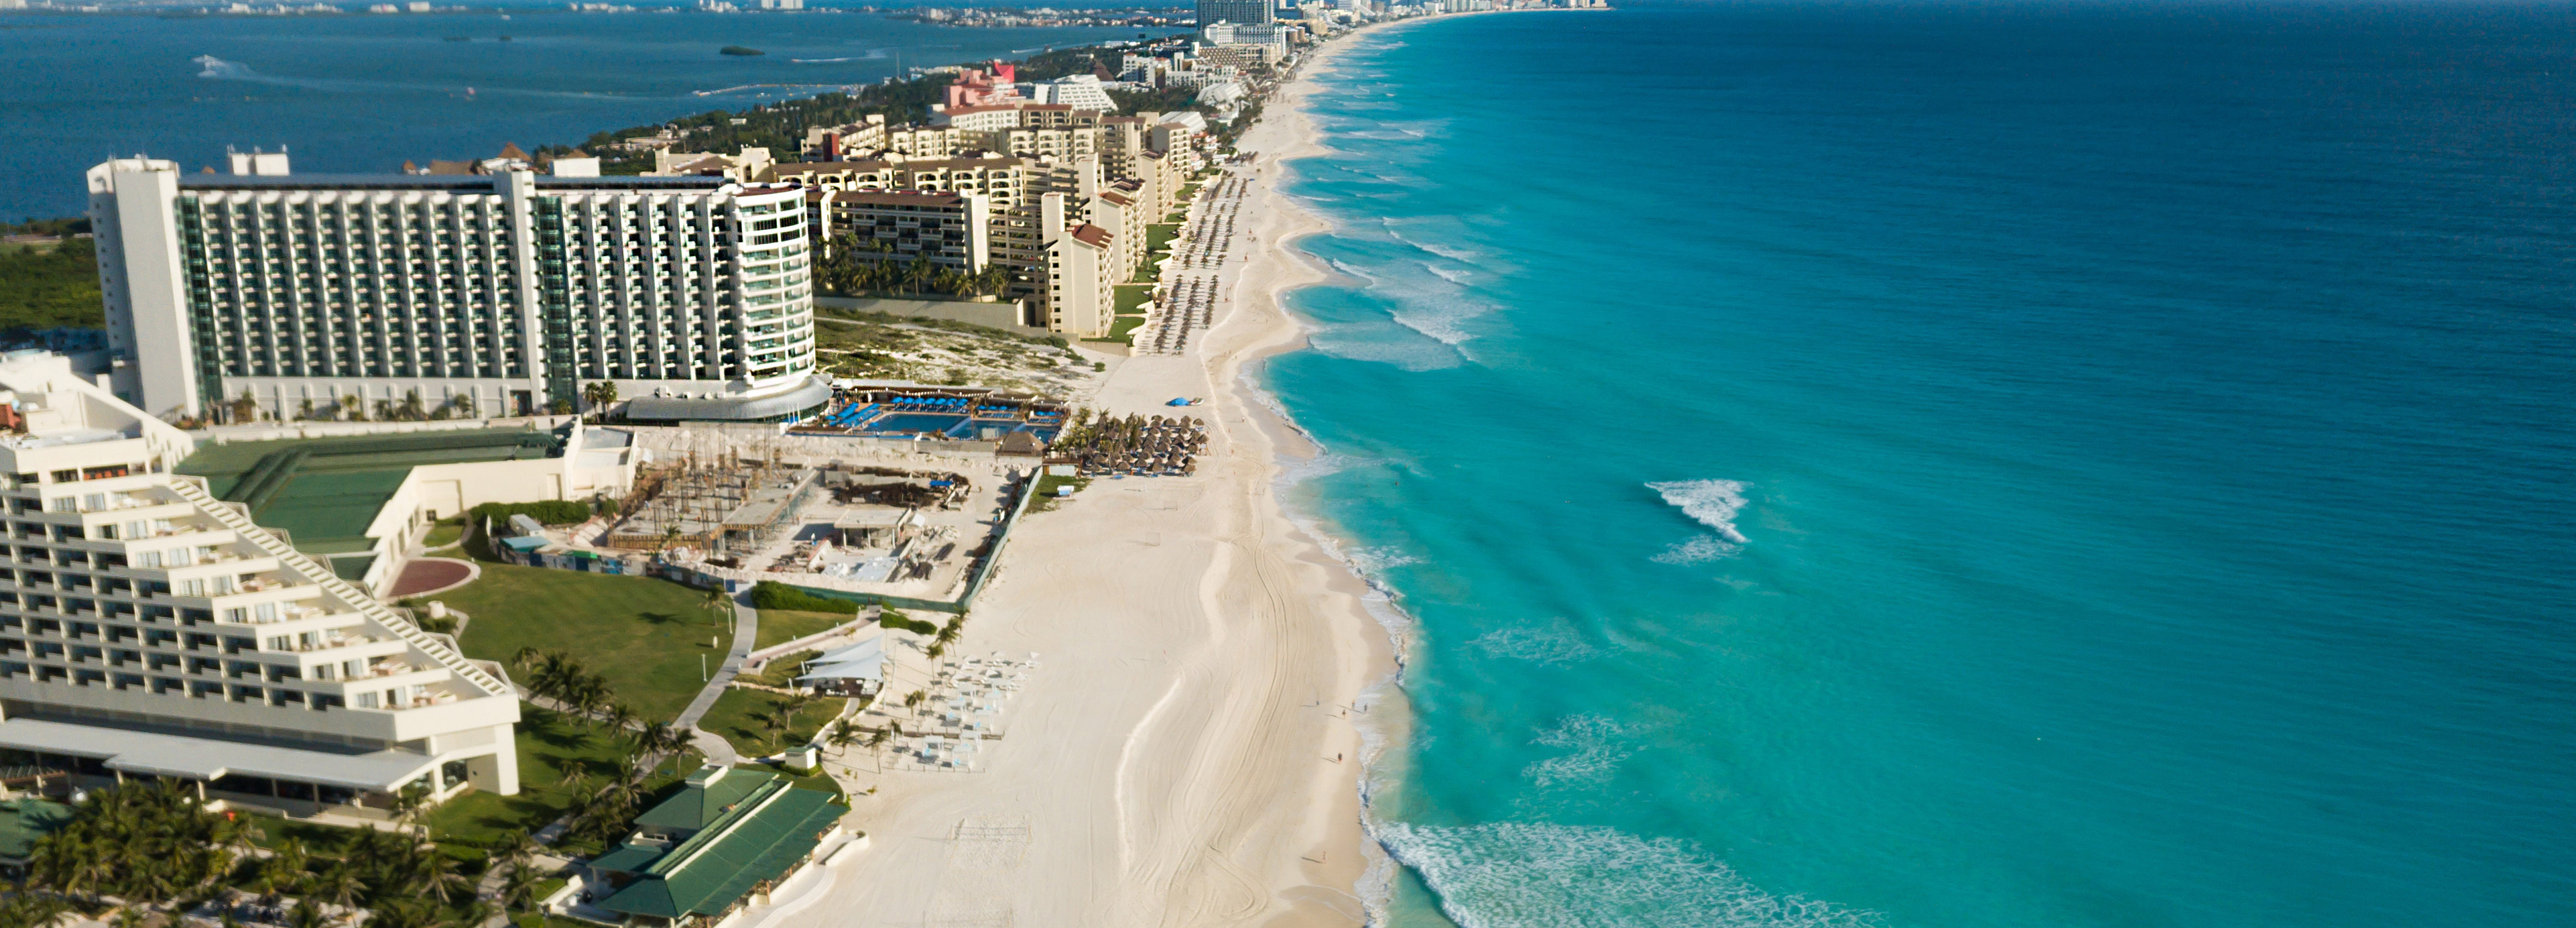 Cancun Holidays In 2019 2020 Cancun Holiday Deals